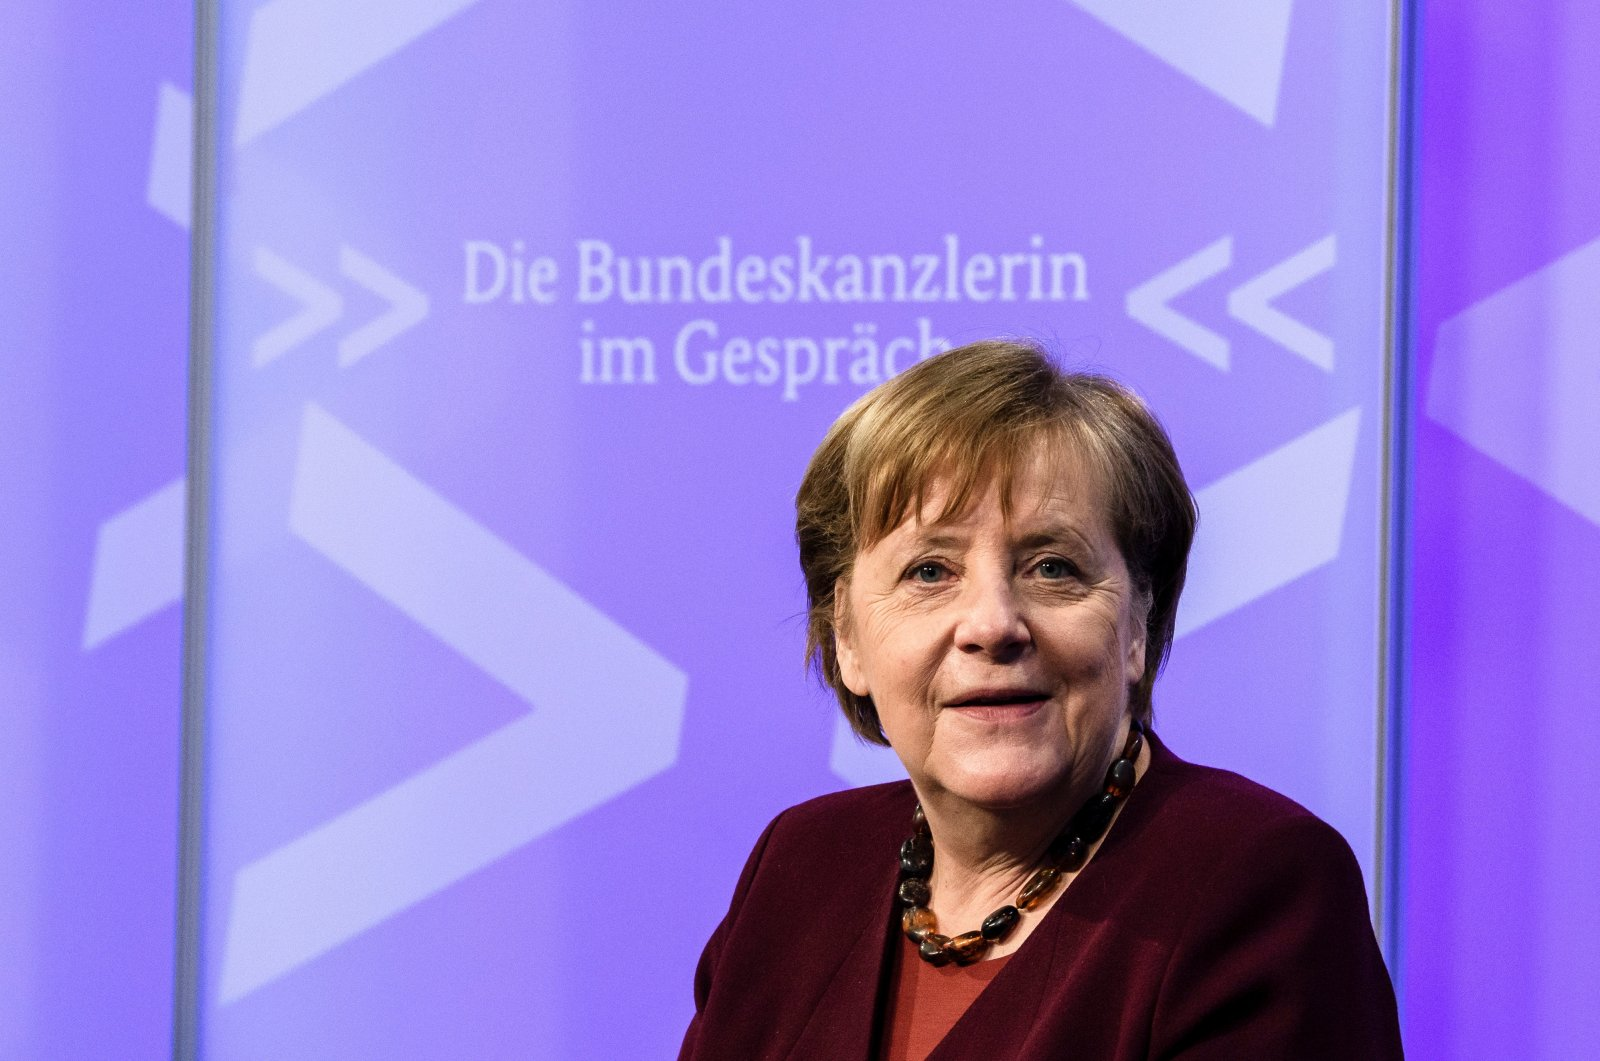 Germany's Chancellor Angela Merkel looks on prior to the beginning of a video conference as part of her citizens' dialogue series, in Berlin, Germany March 10, 2021. (Clemens Bilan / Pool via Reuters)